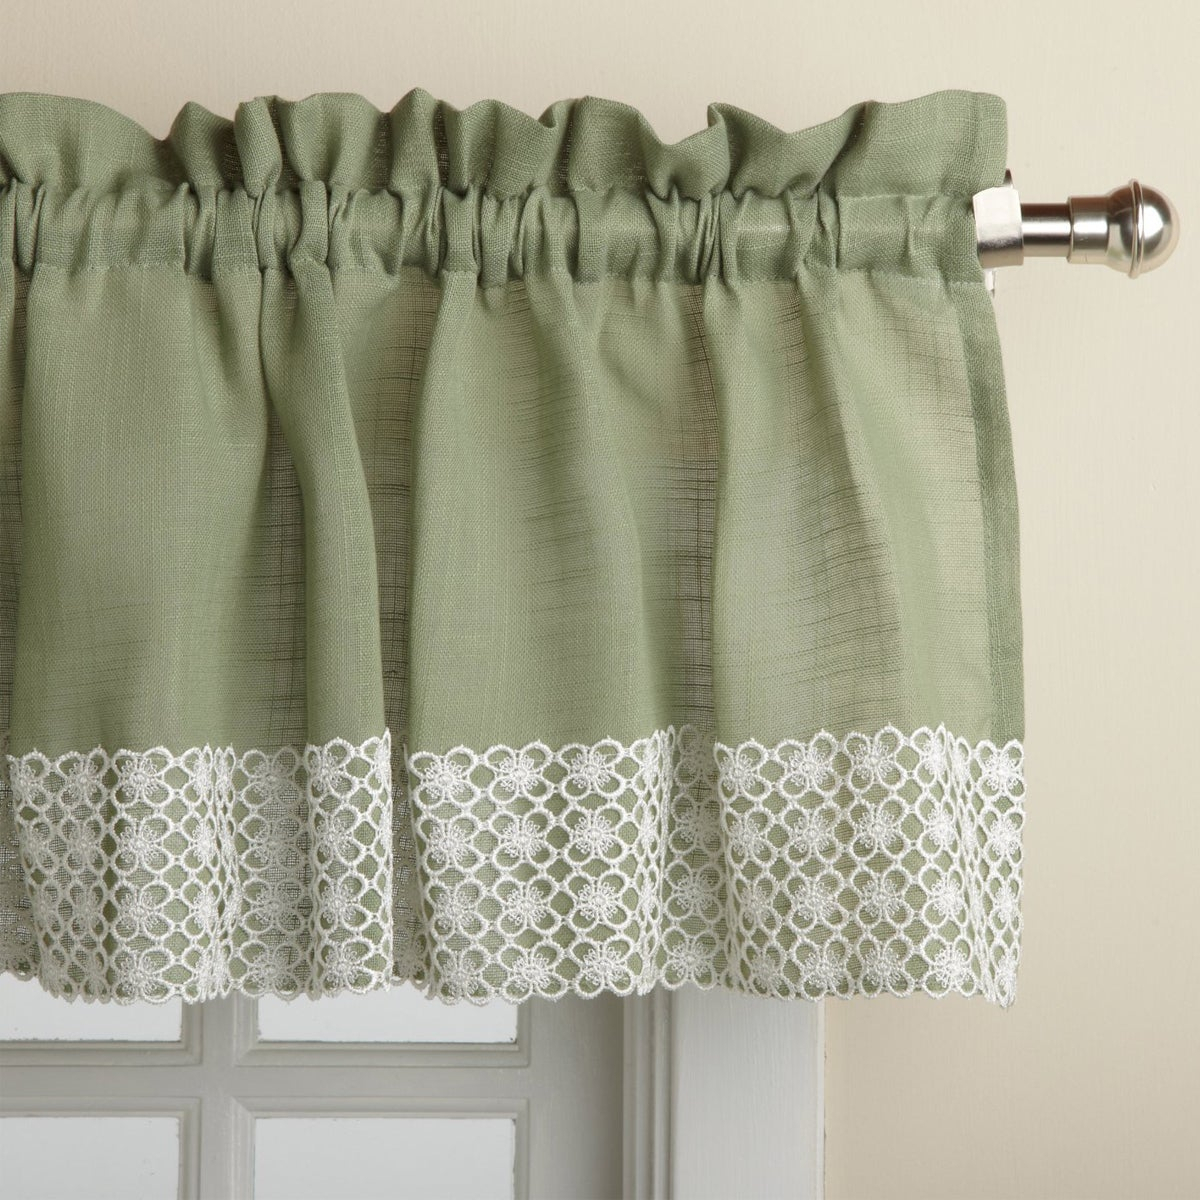 Sage Country Style Curtain Parts With White Daisy Lace Accent (Separates Tiers, Swags And Valances) Throughout Country Style Curtain Parts With White Daisy Lace Accent (View 17 of 20)